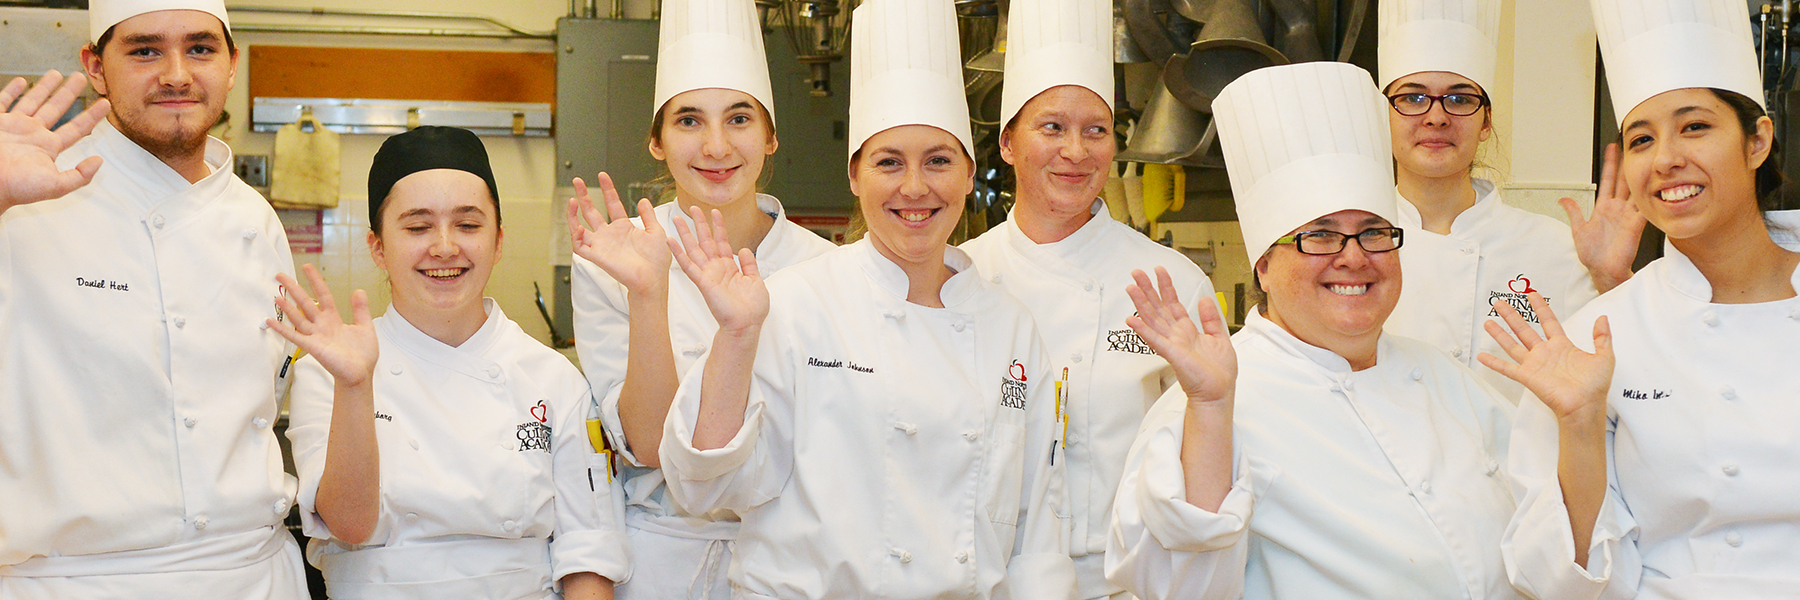 Group of pastry chef students waving at camera